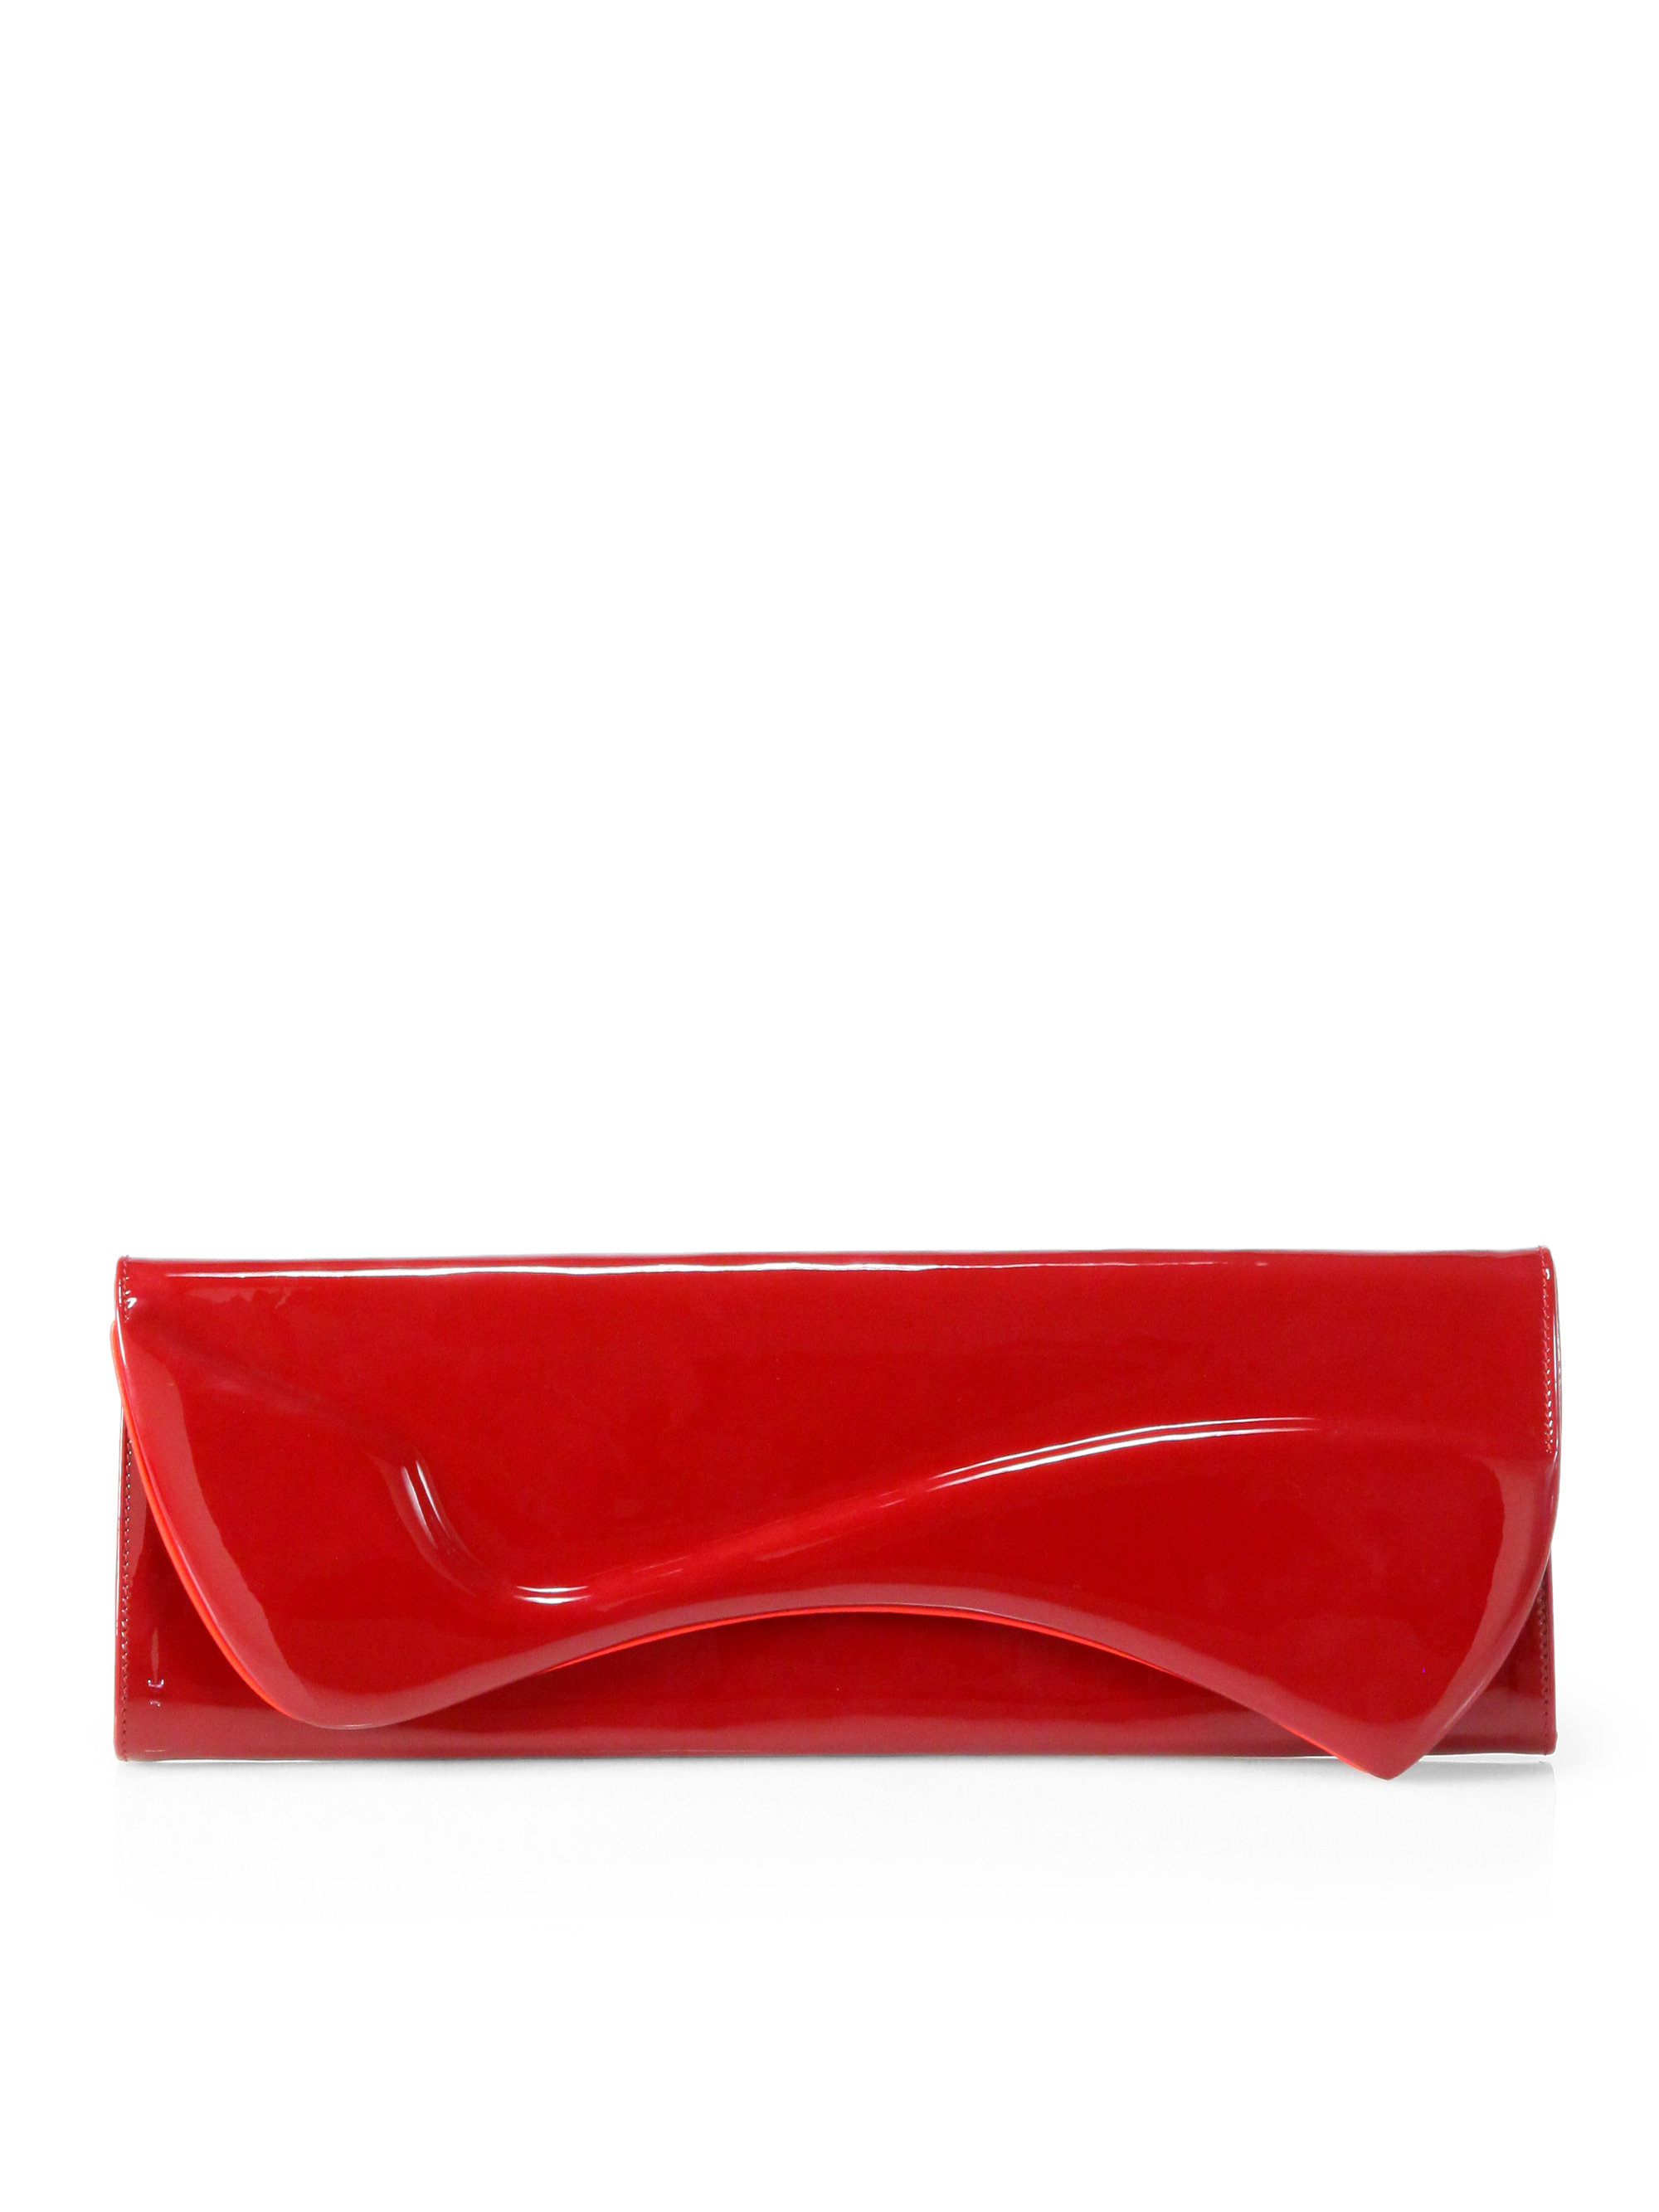 christian louboutin pigalle patent clutch